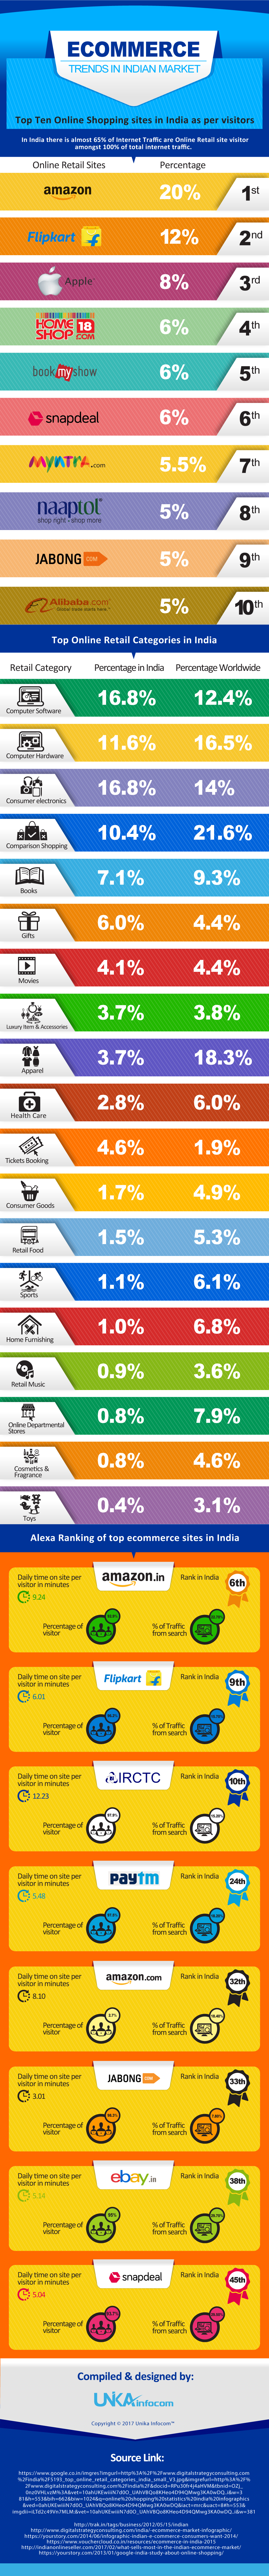 Ecommerce trends in Indian Market,Ecommerce Business in